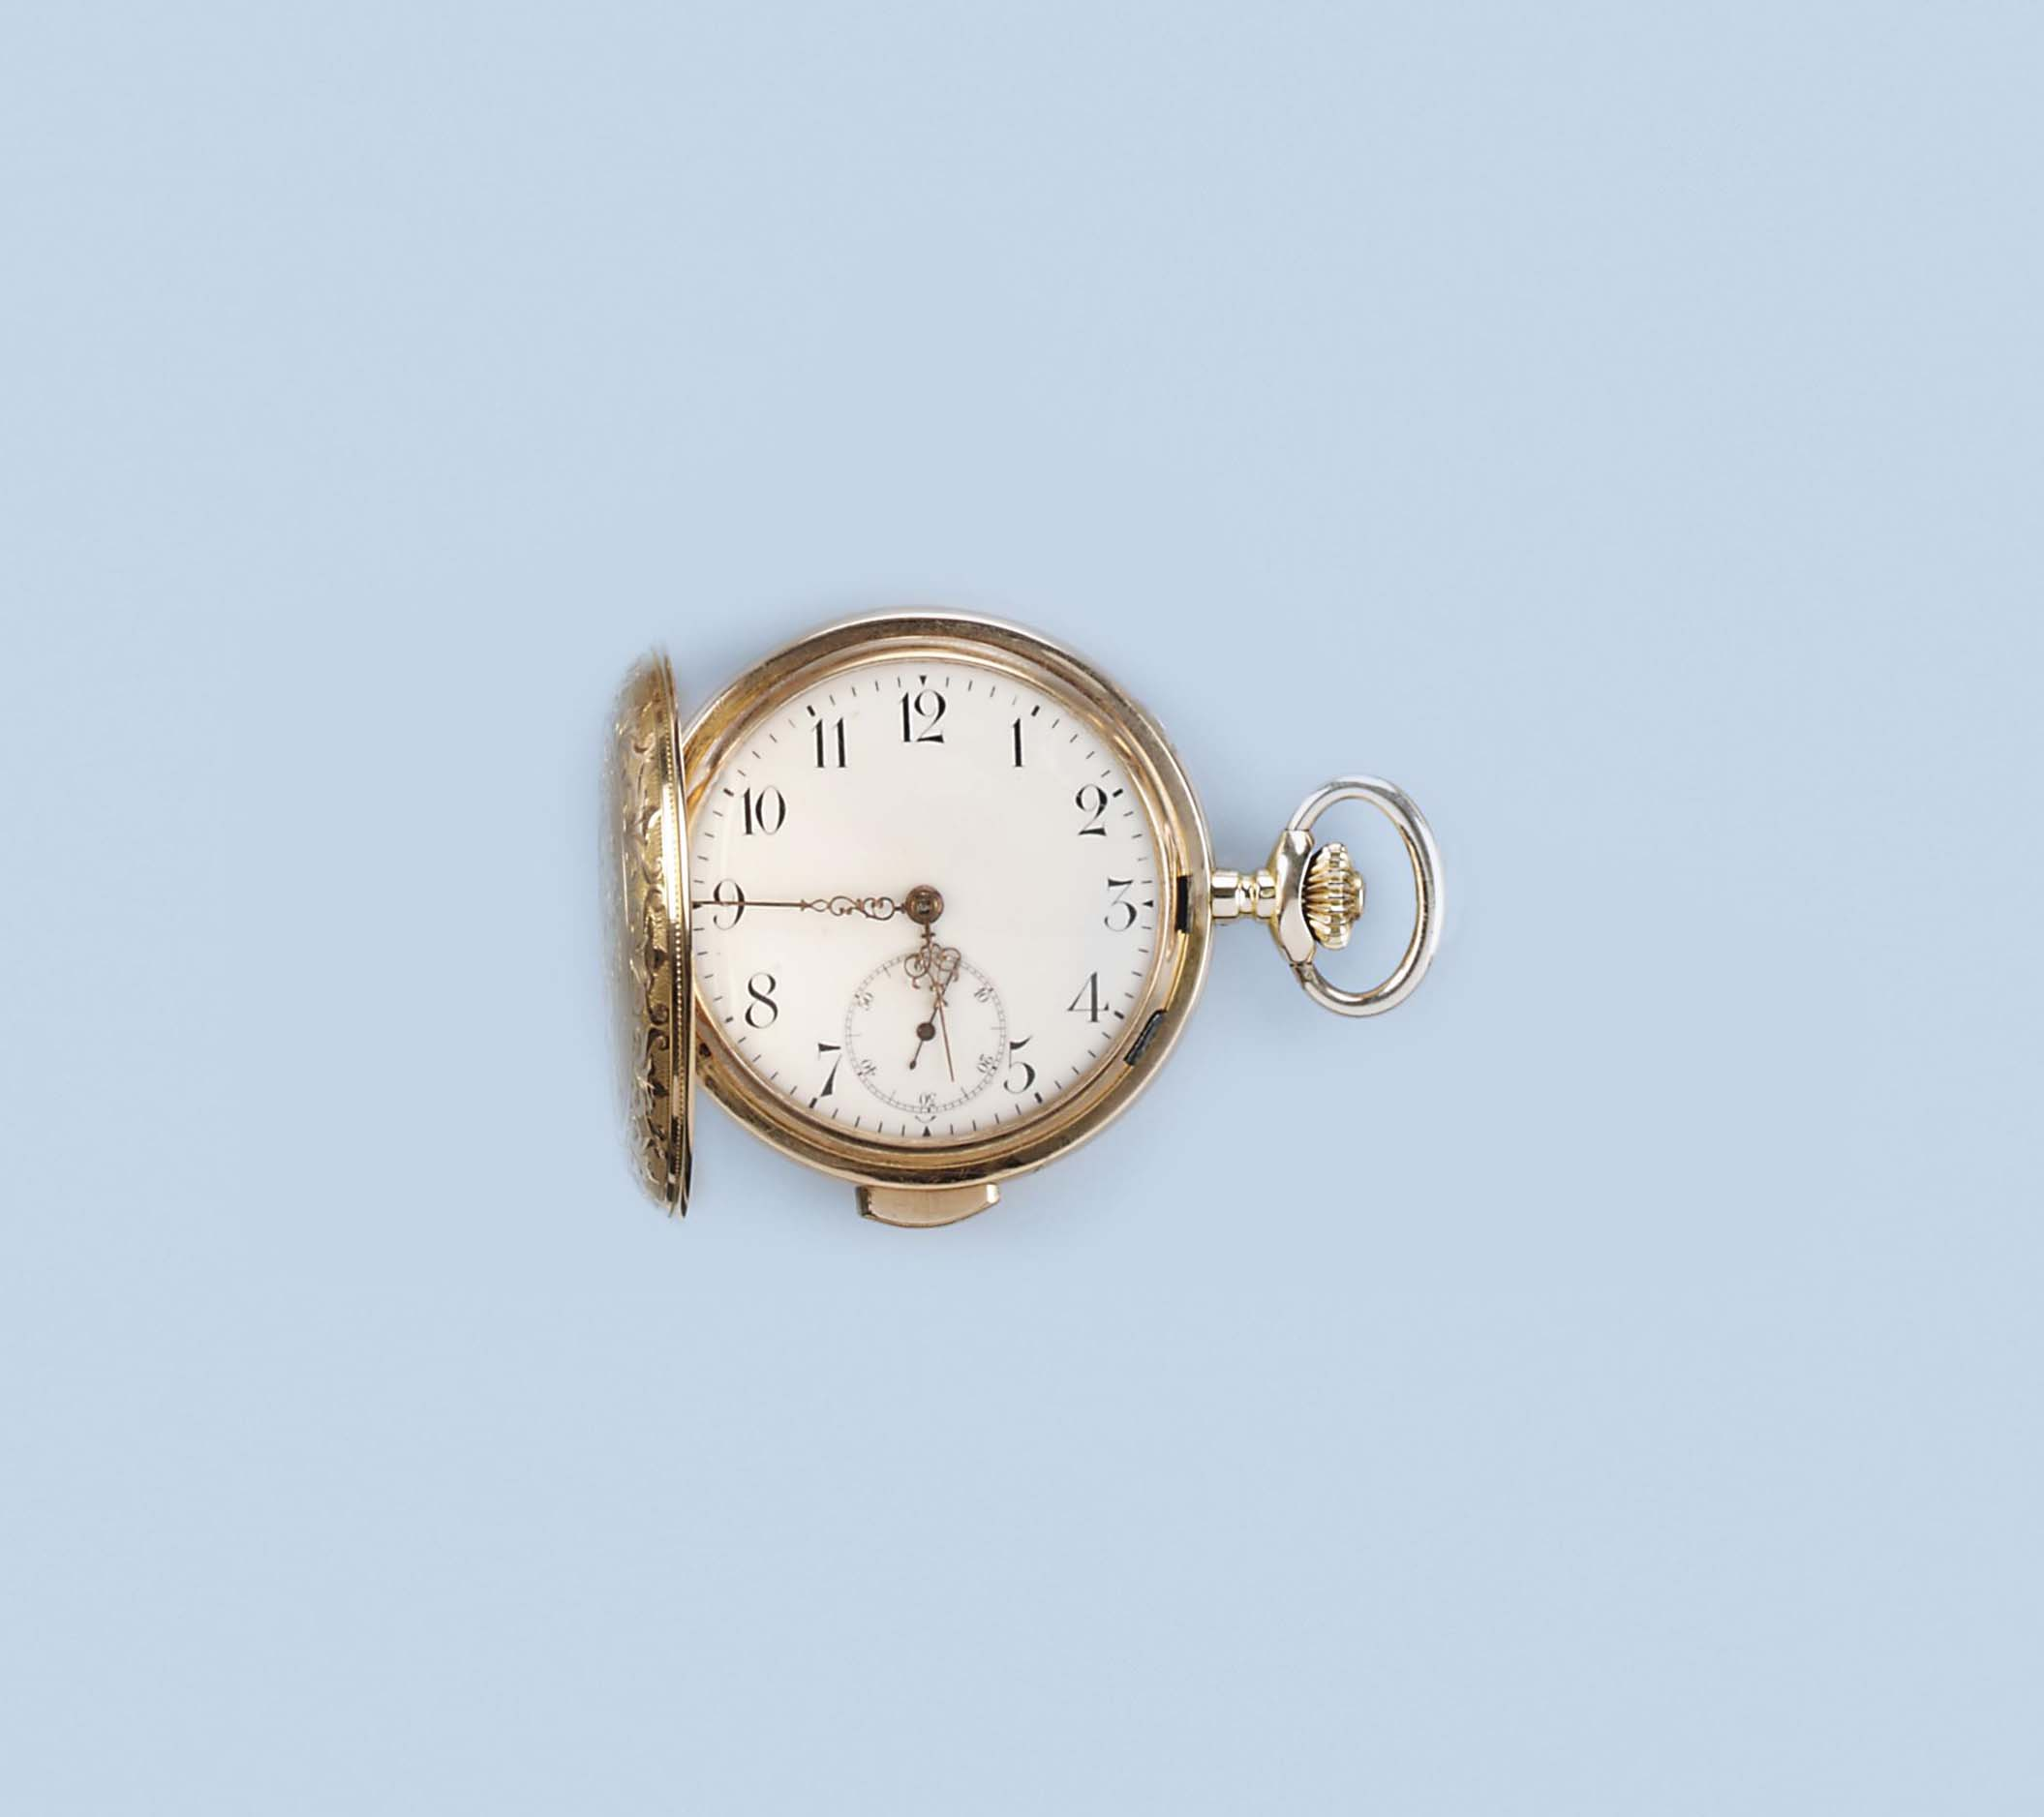 AN 18K GOLD REPEATING POCKETWATCH, BY VOLTA